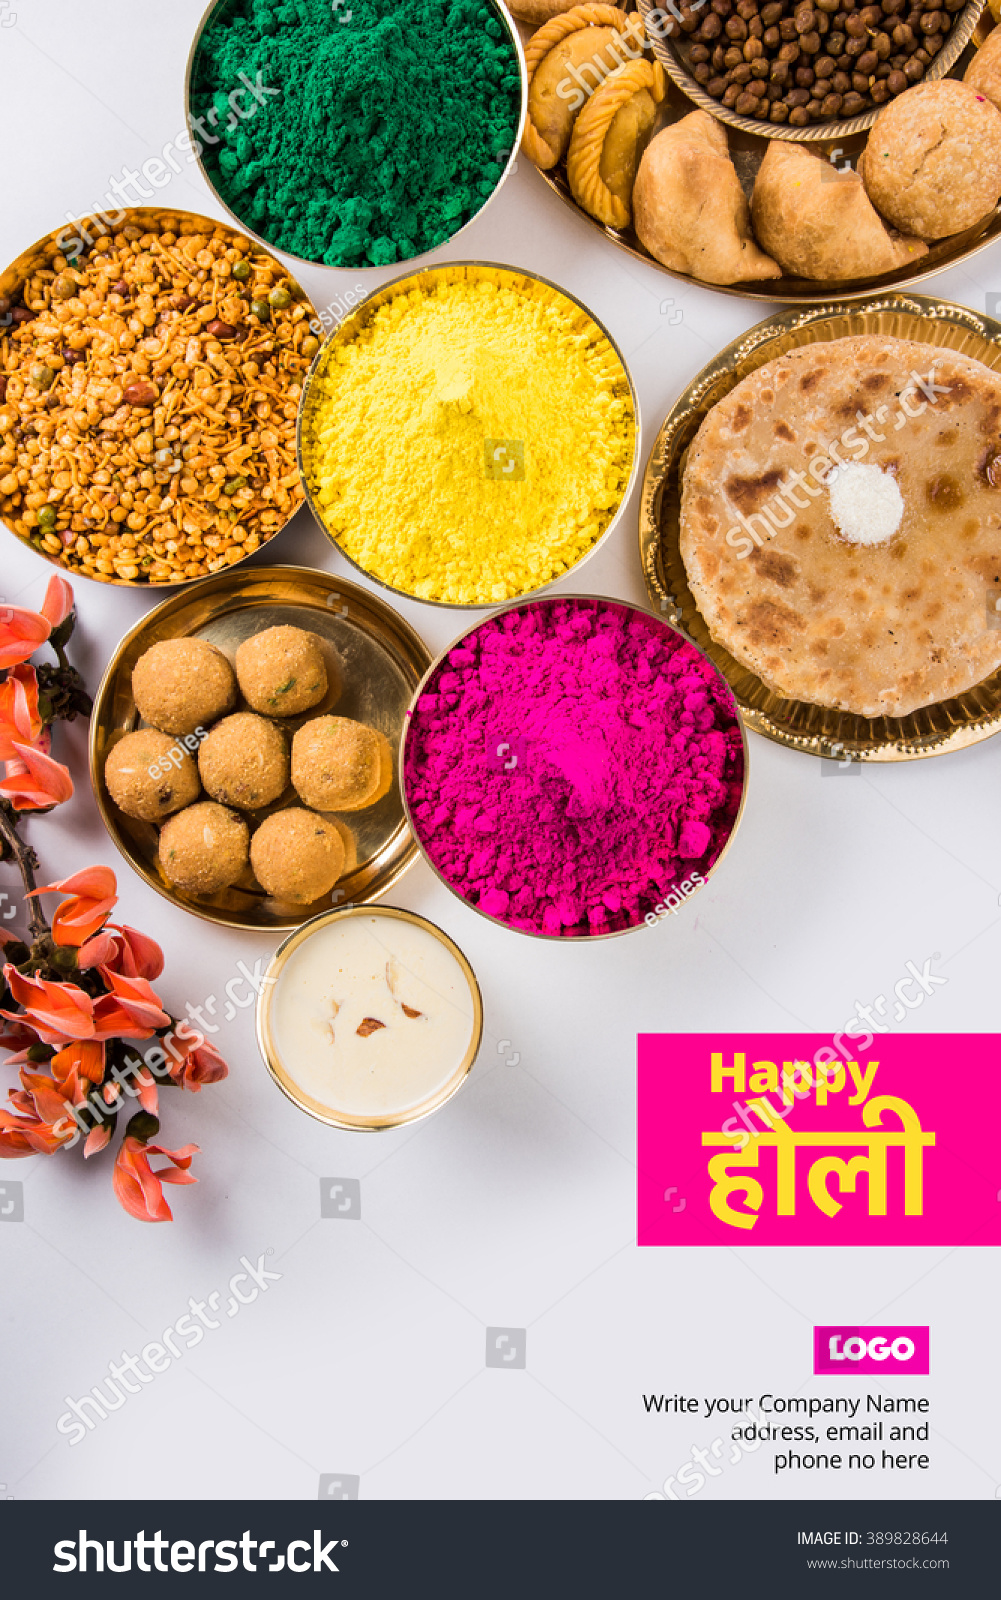 Royalty free happy holi greeting card designed 389828644 stock happy holi greeting card designed showing indian traditional sweet and salty food flowers and powder forumfinder Gallery